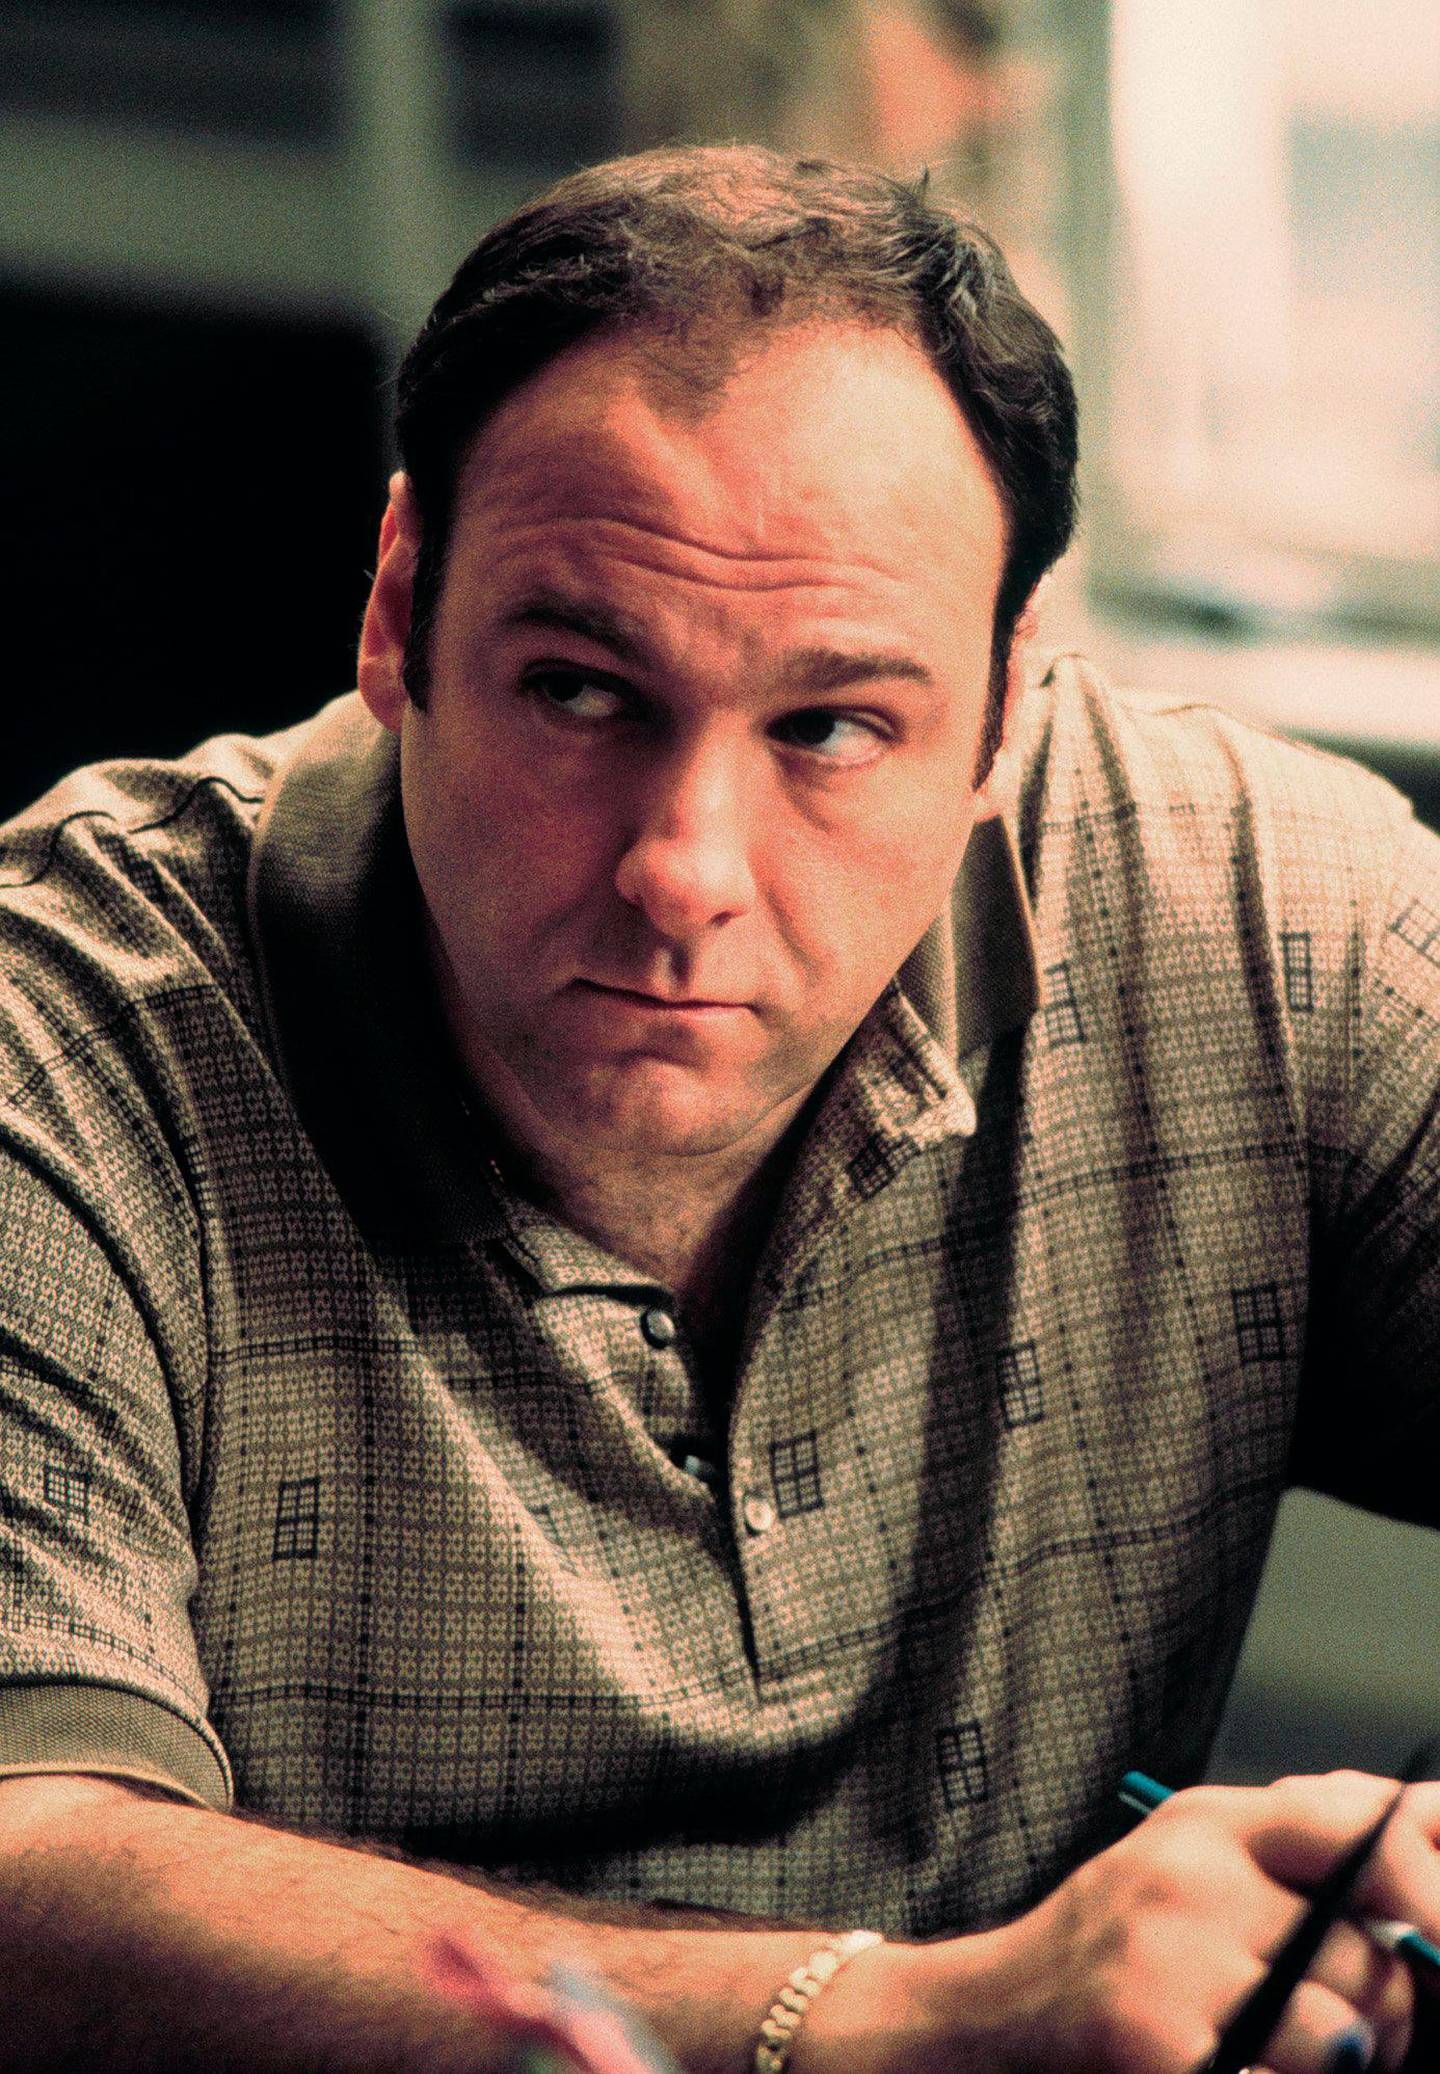 """James Gandolfini stars as Tony Soprano in the critically acclaimed HBO series """"The Sopranos."""" The show received 16 Emmy nominations Thursday, July 22, 1999, including best dramatic series and best actor for Gandolfini. It is the first cable show ever recognized in the dramatic series category. (AP Photo/HO, HBO, Anthony Nesta)"""